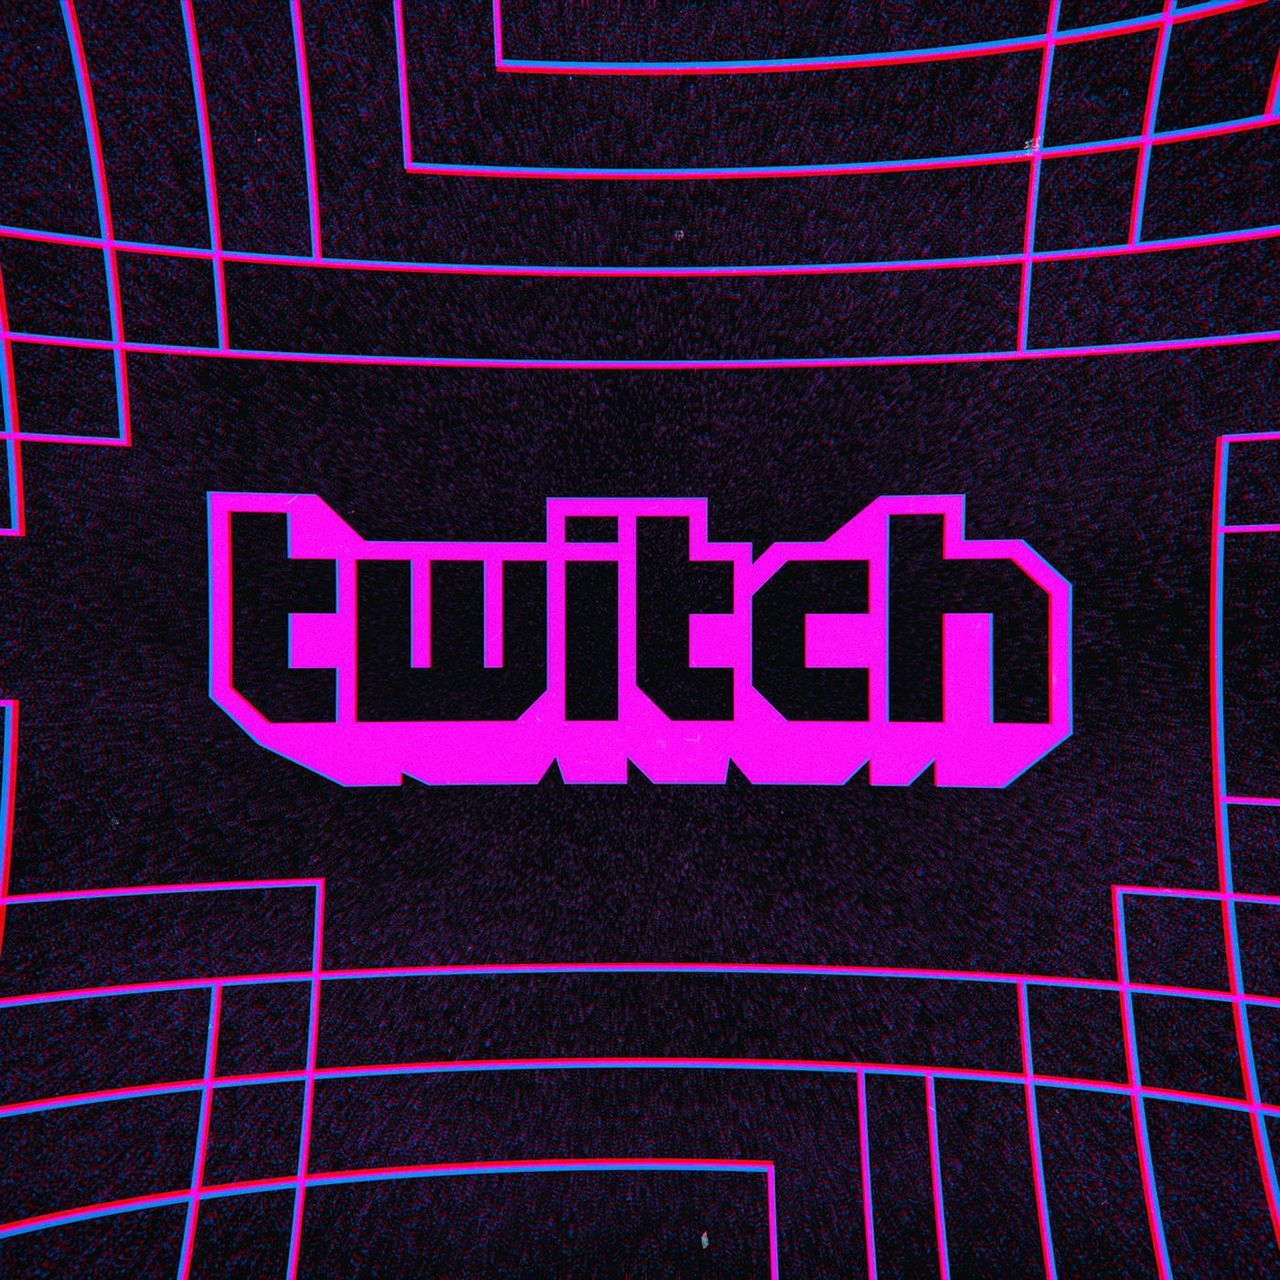 eMarketer forecast predicts Twitch will surpass 40 million active users next year. Image via The Verge.